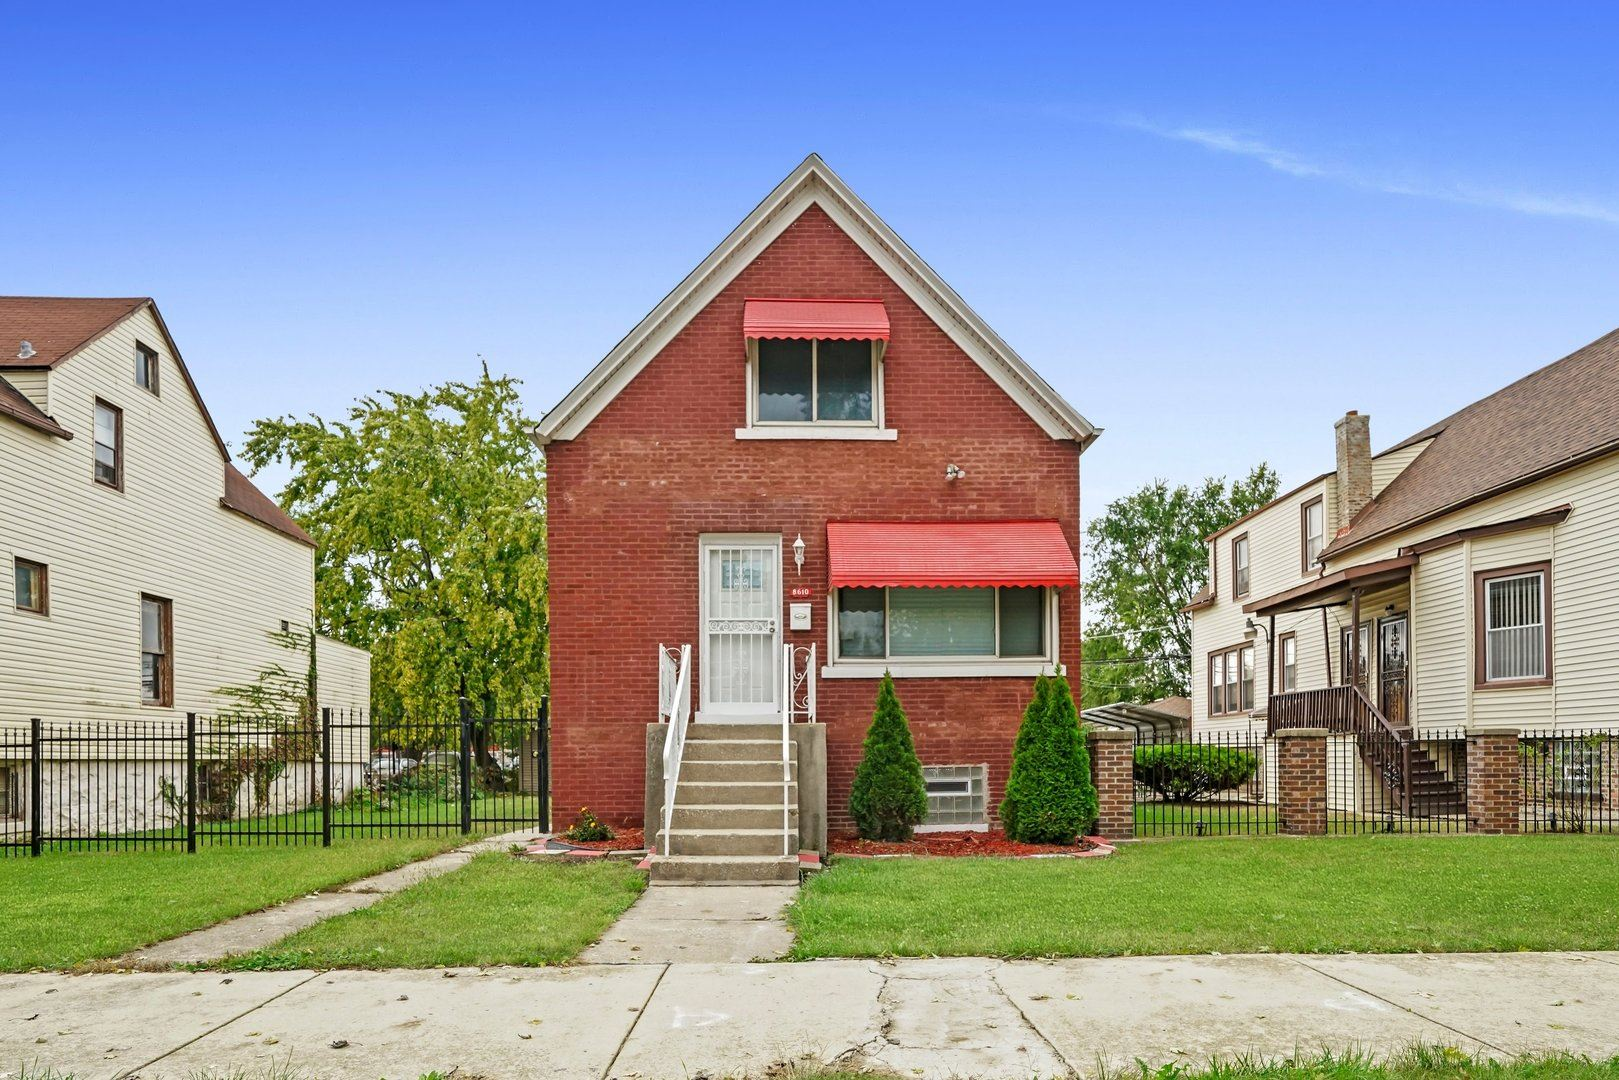 8610 S May Street, Chicago, IL 60620 - #: 11252453